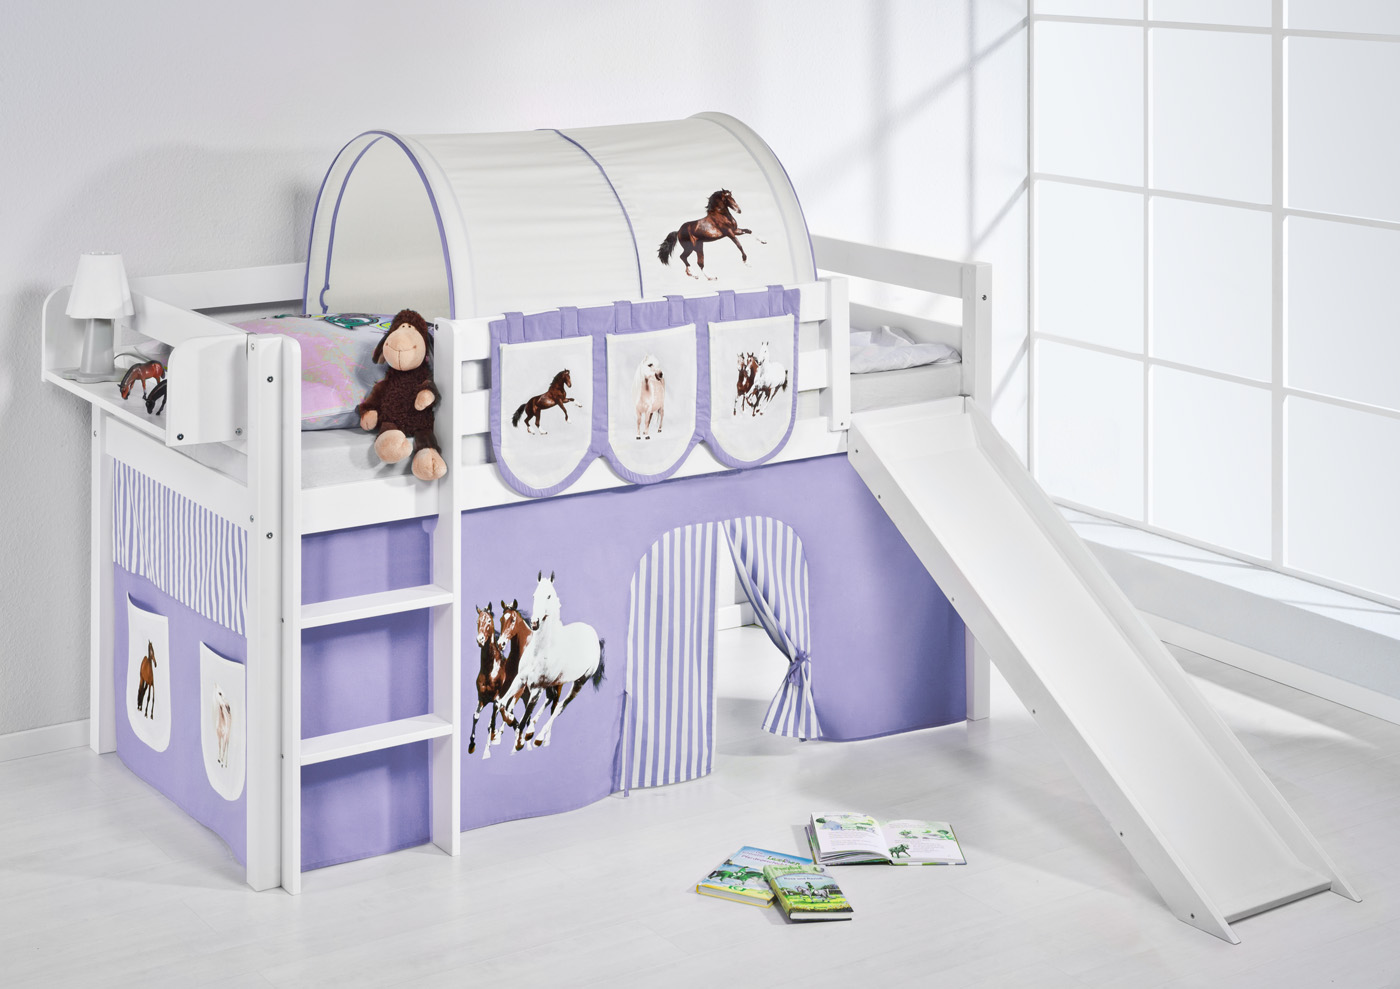 lit mezzanine avec chelle toboggan jelle blanc avec rideau lilokids ebay. Black Bedroom Furniture Sets. Home Design Ideas